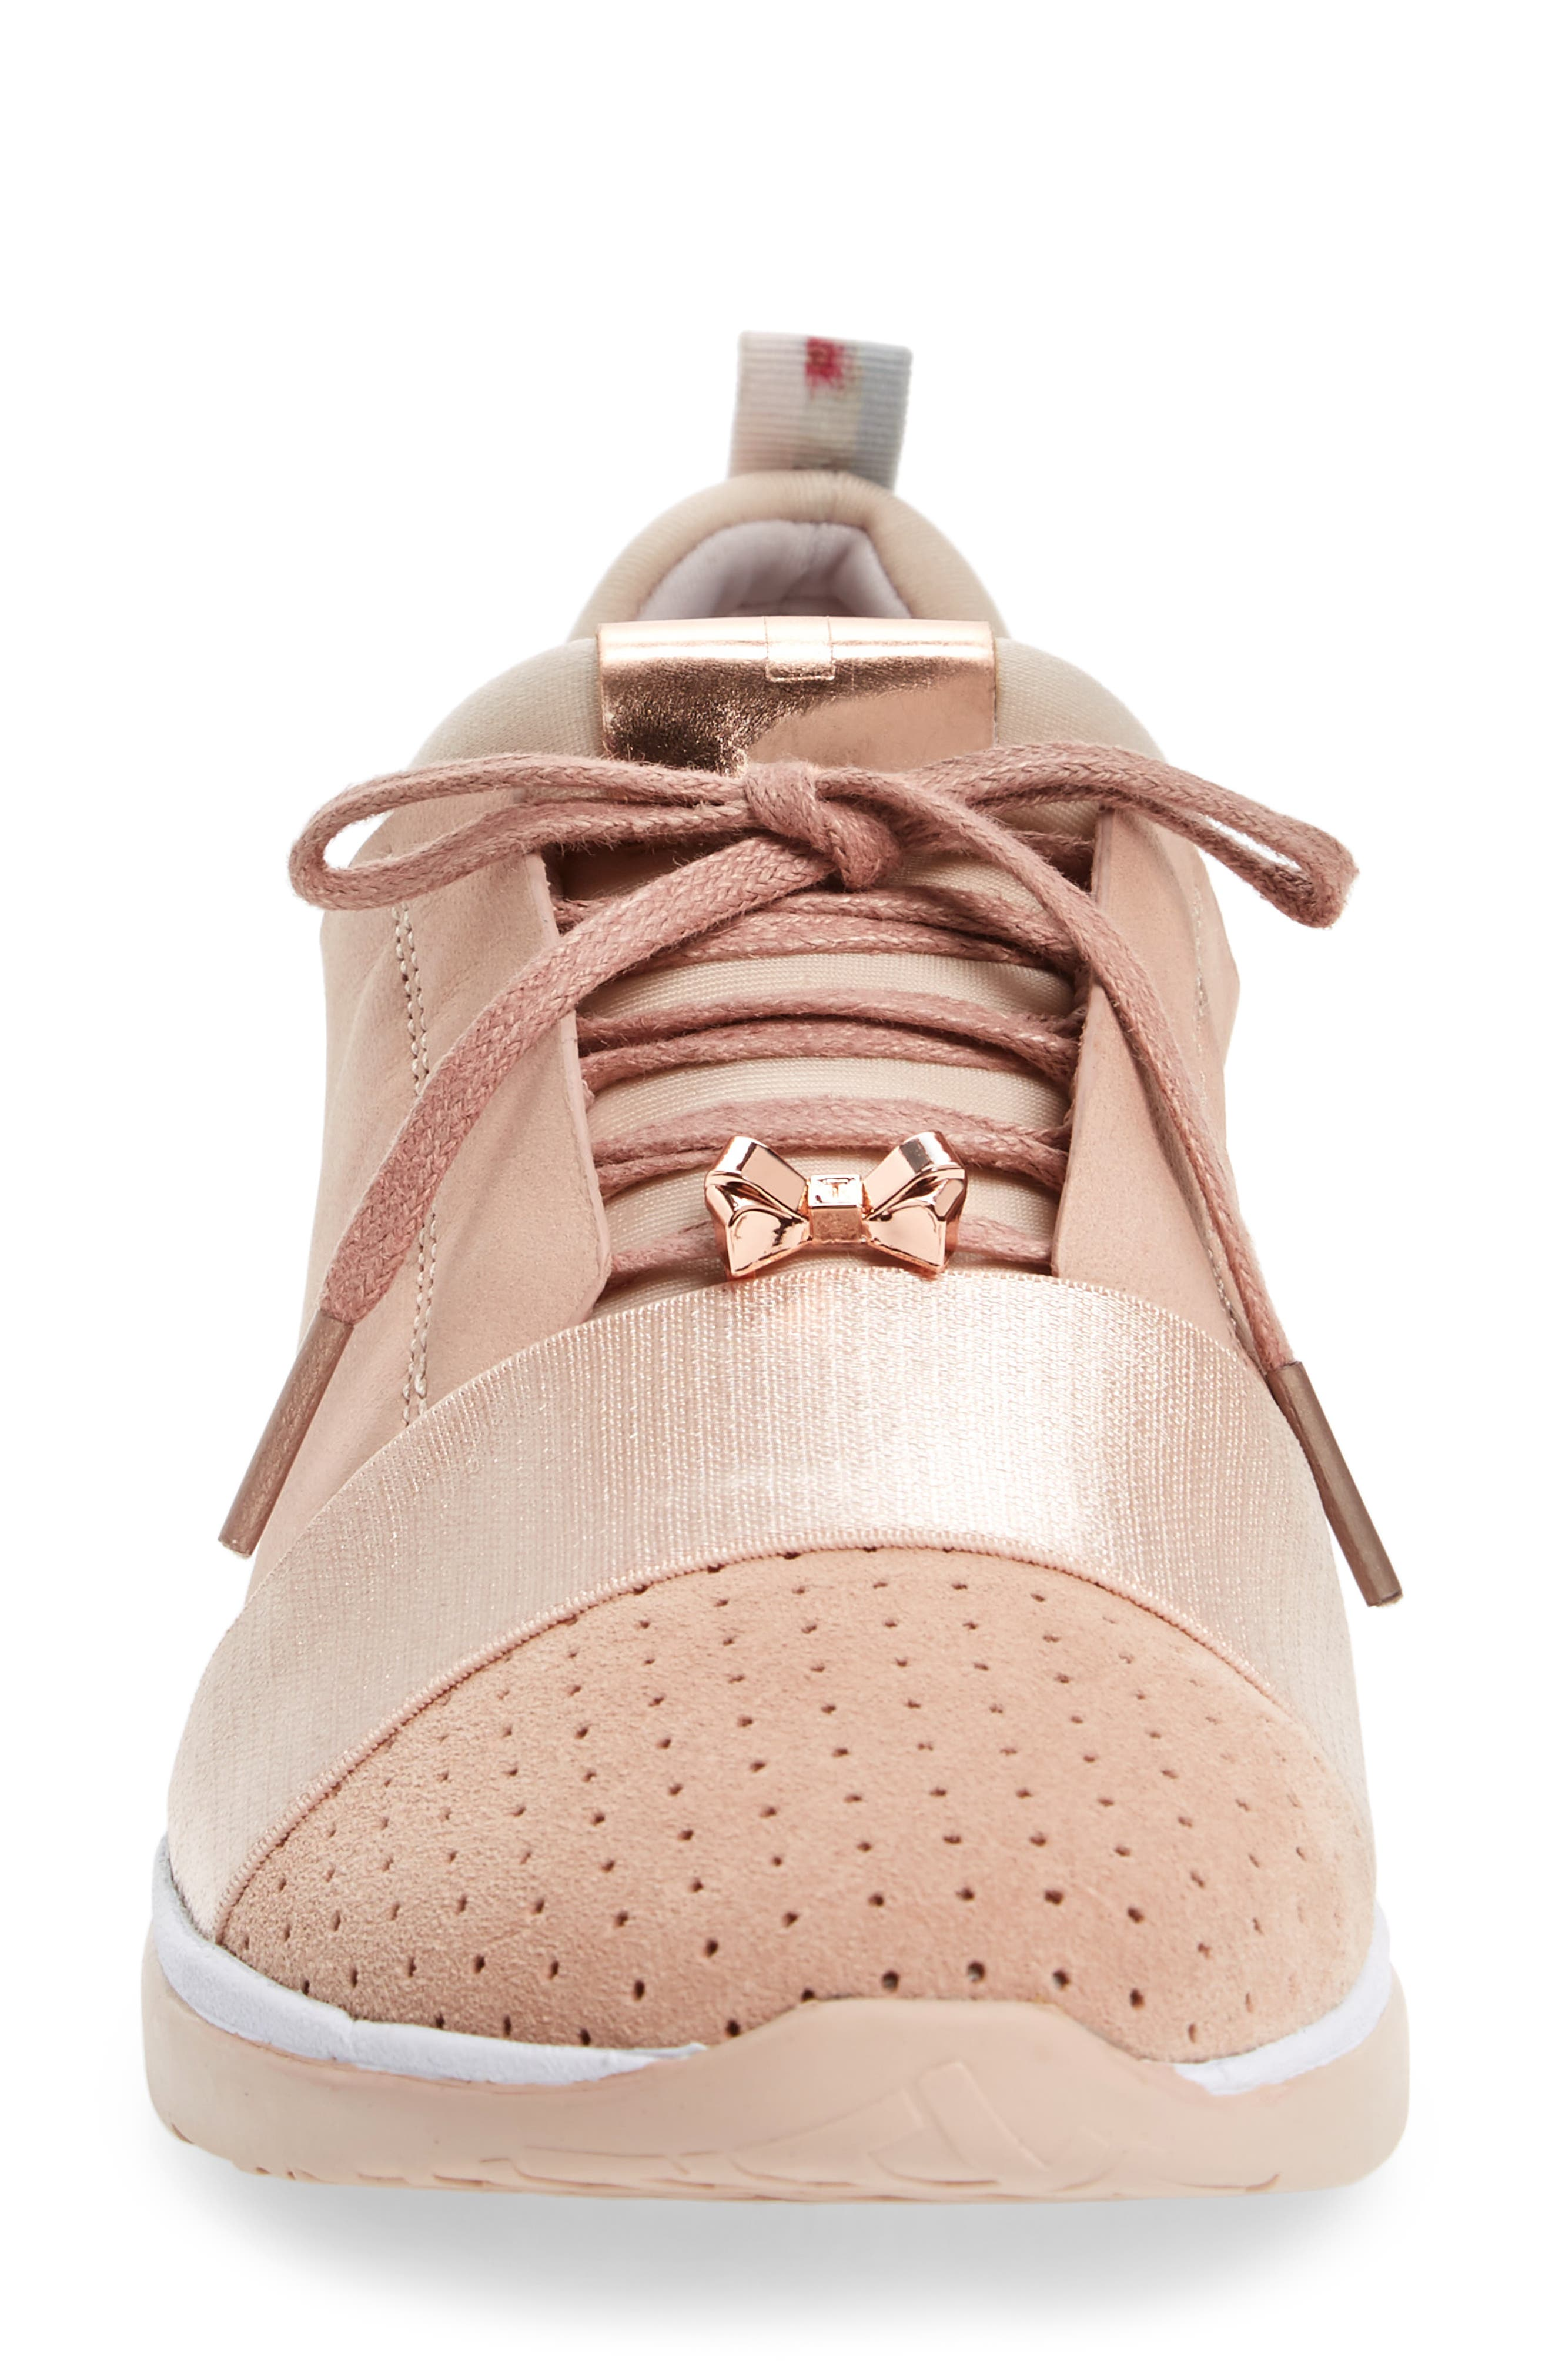 Cepa Sneaker,                             Alternate thumbnail 4, color,                             Light Pink